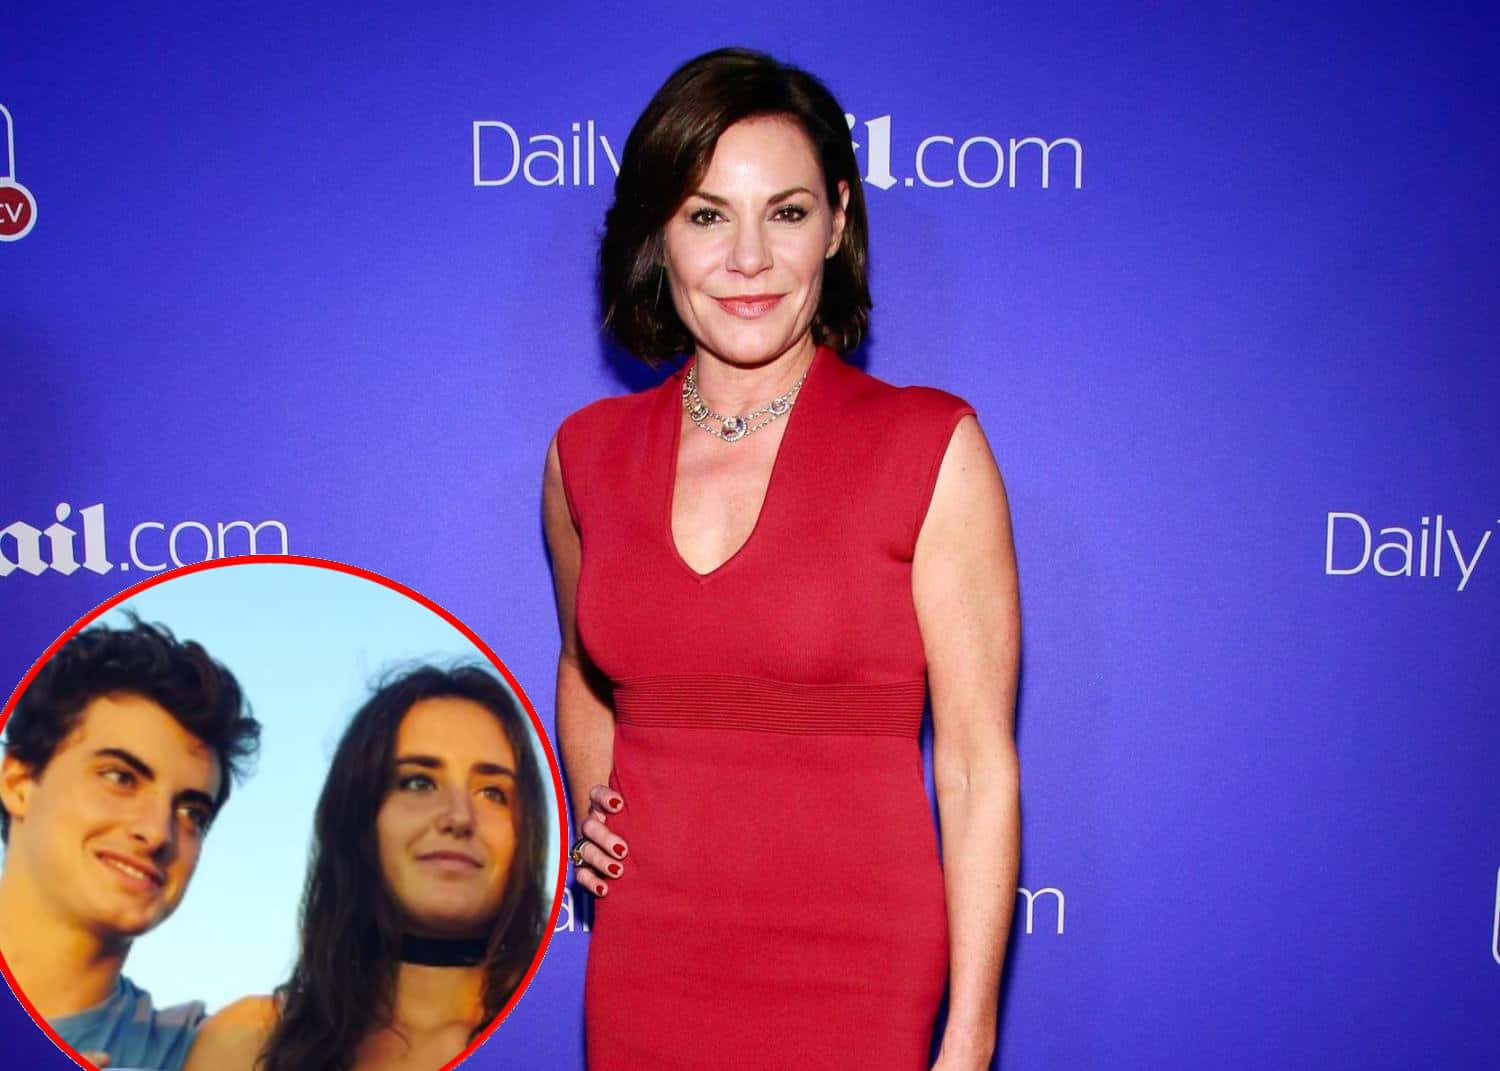 RHONY Star Luann de Lesseps' Kids Drop Lawsuit Against Her, Luann Reacts to News